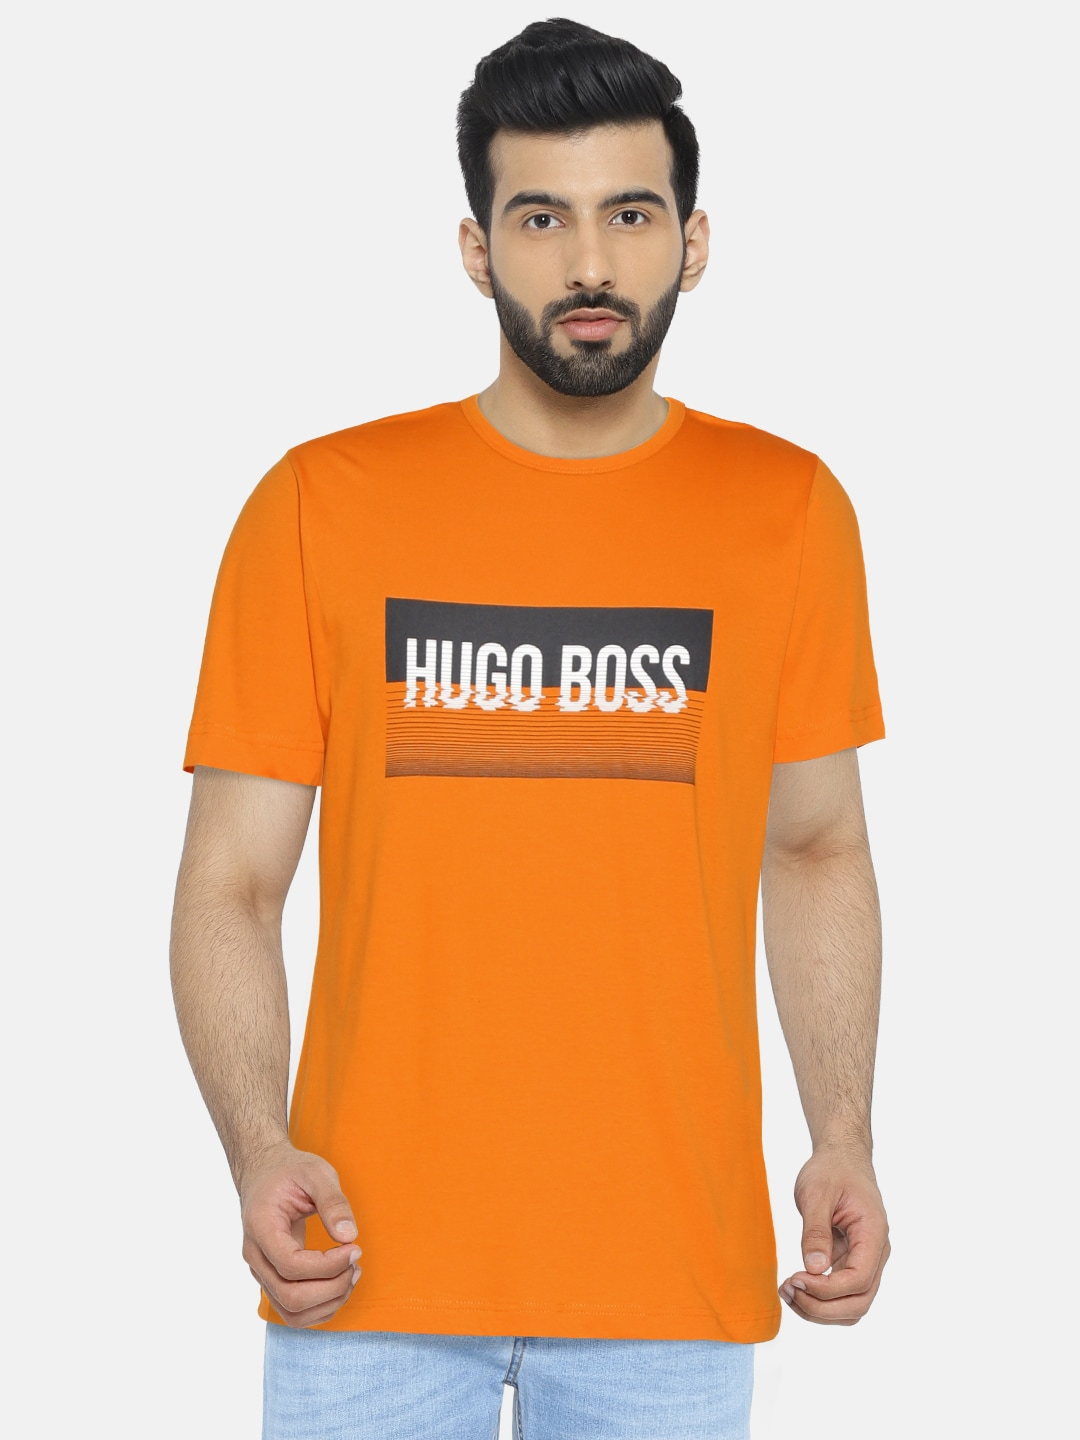 6a4320cdd Hugo Boss - Buy Hogo Boss Collection Online In India | Myntra